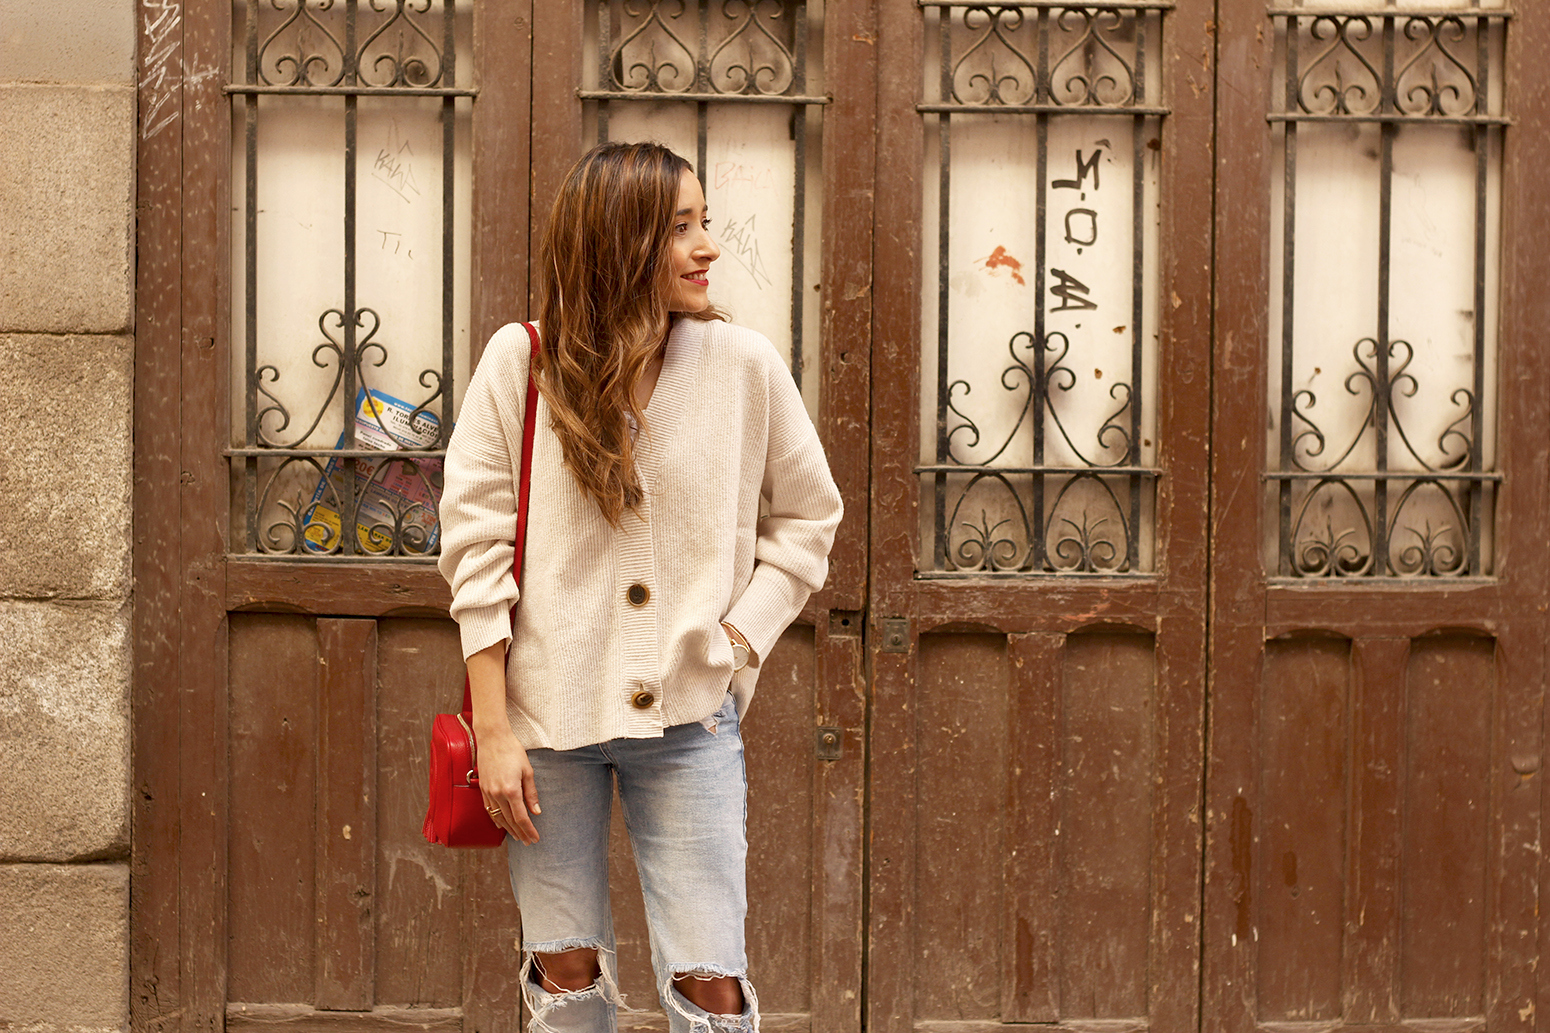 beige cardigan gucci bag red heels ripped jeans street style outfit 201912